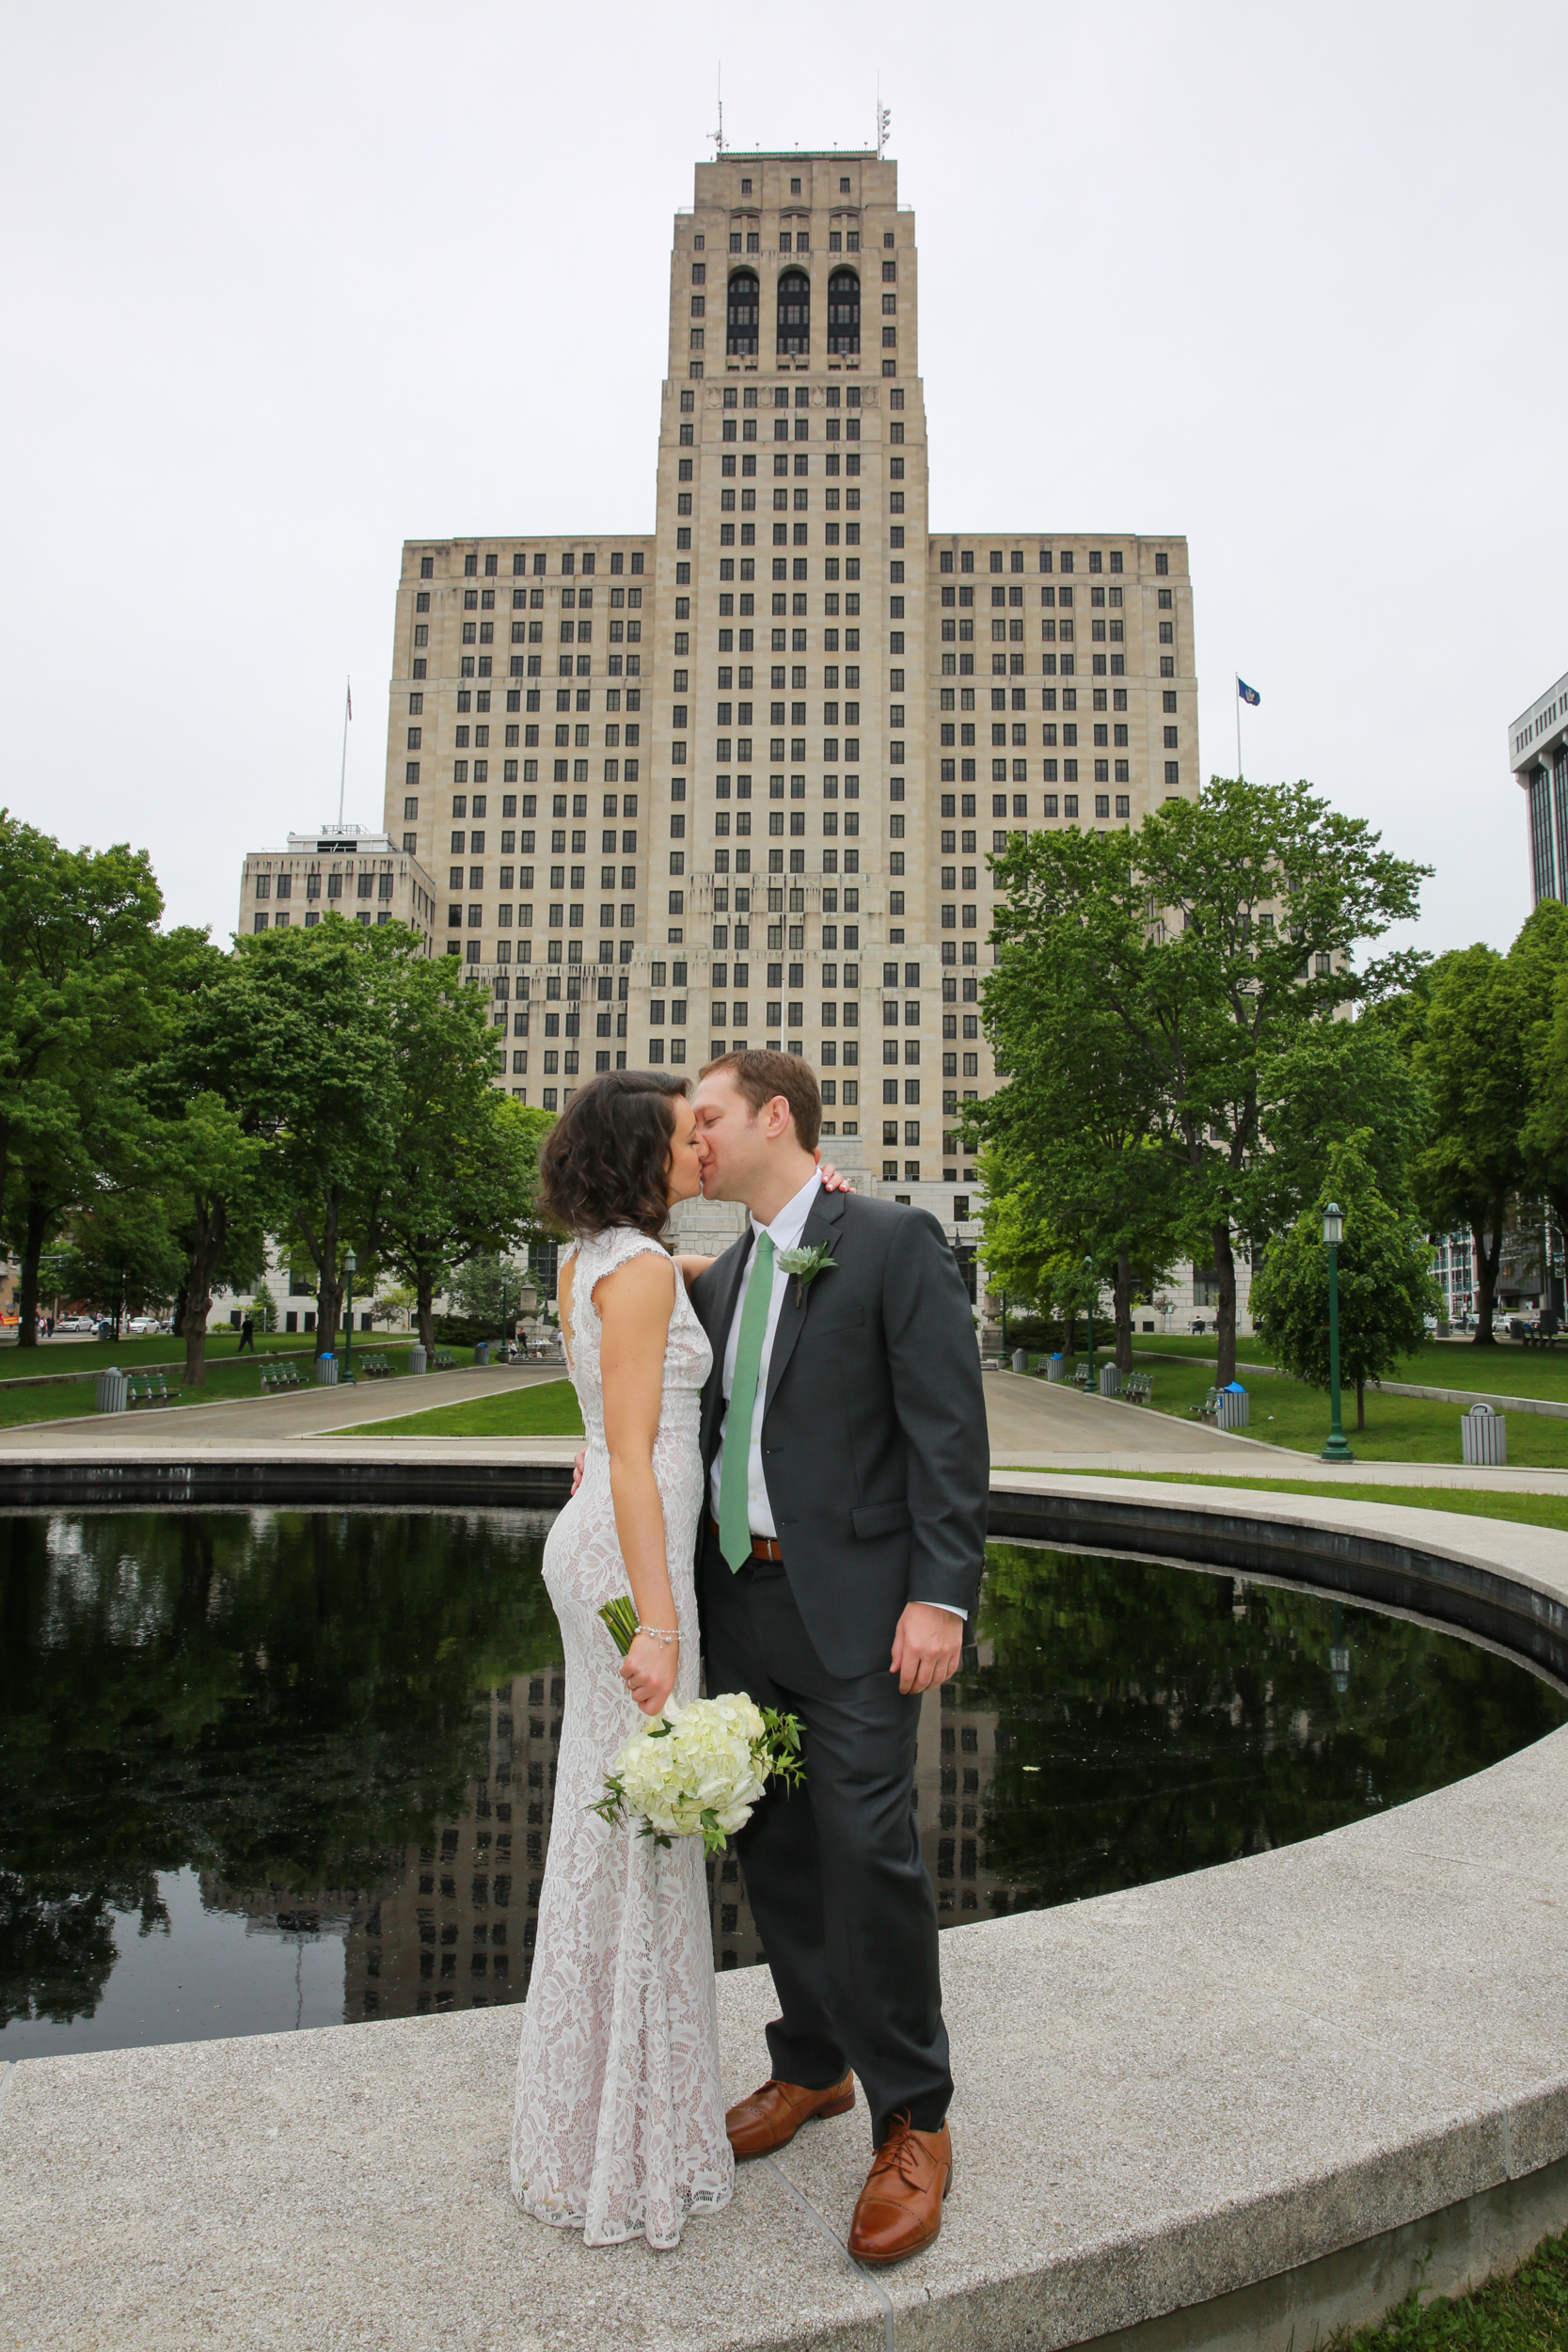 Great Wedding Photography in Albany, NY